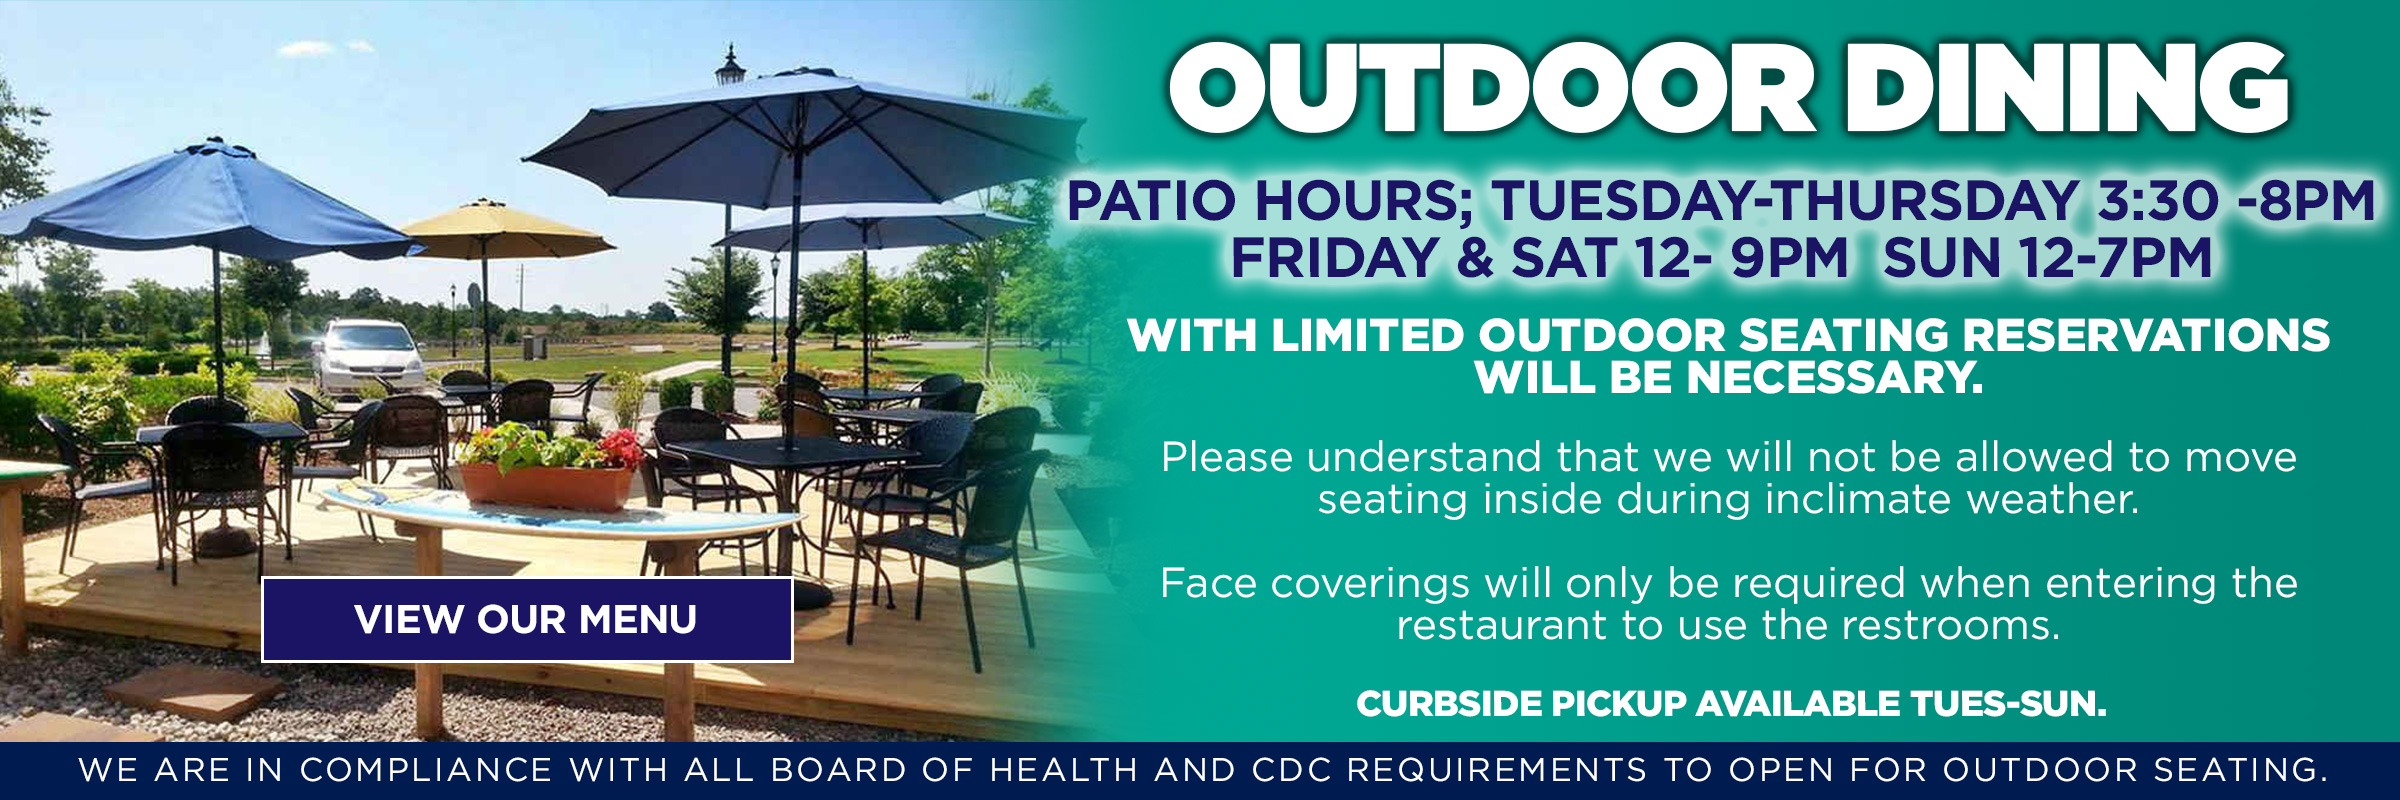 Outdoor Dining Banner2